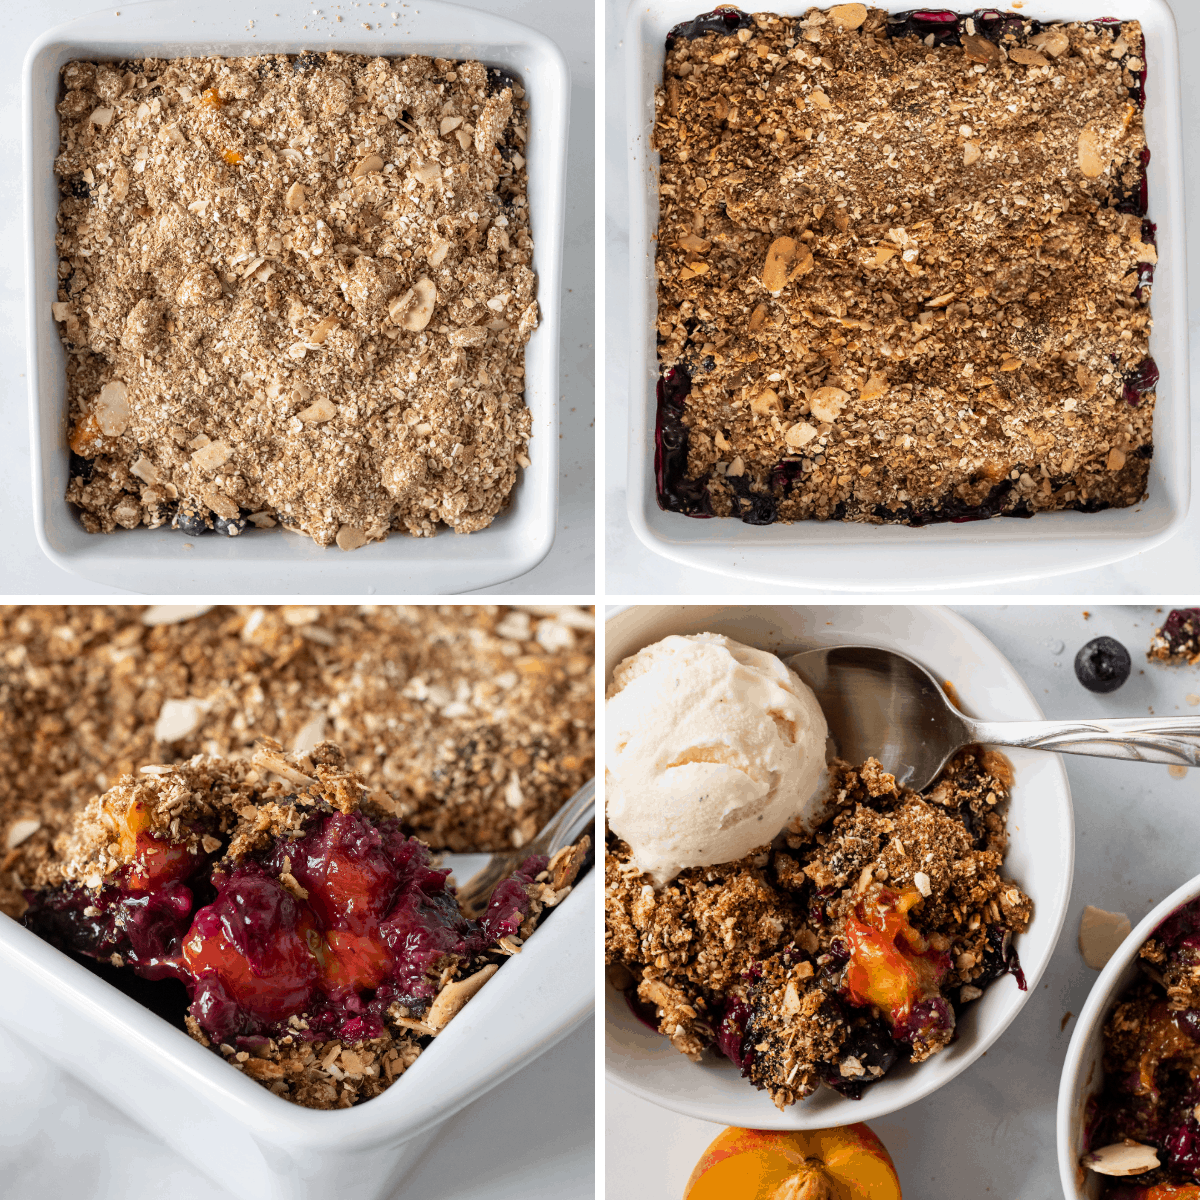 another step by step collage showing the last steps to baking a blueberry peach crisp.